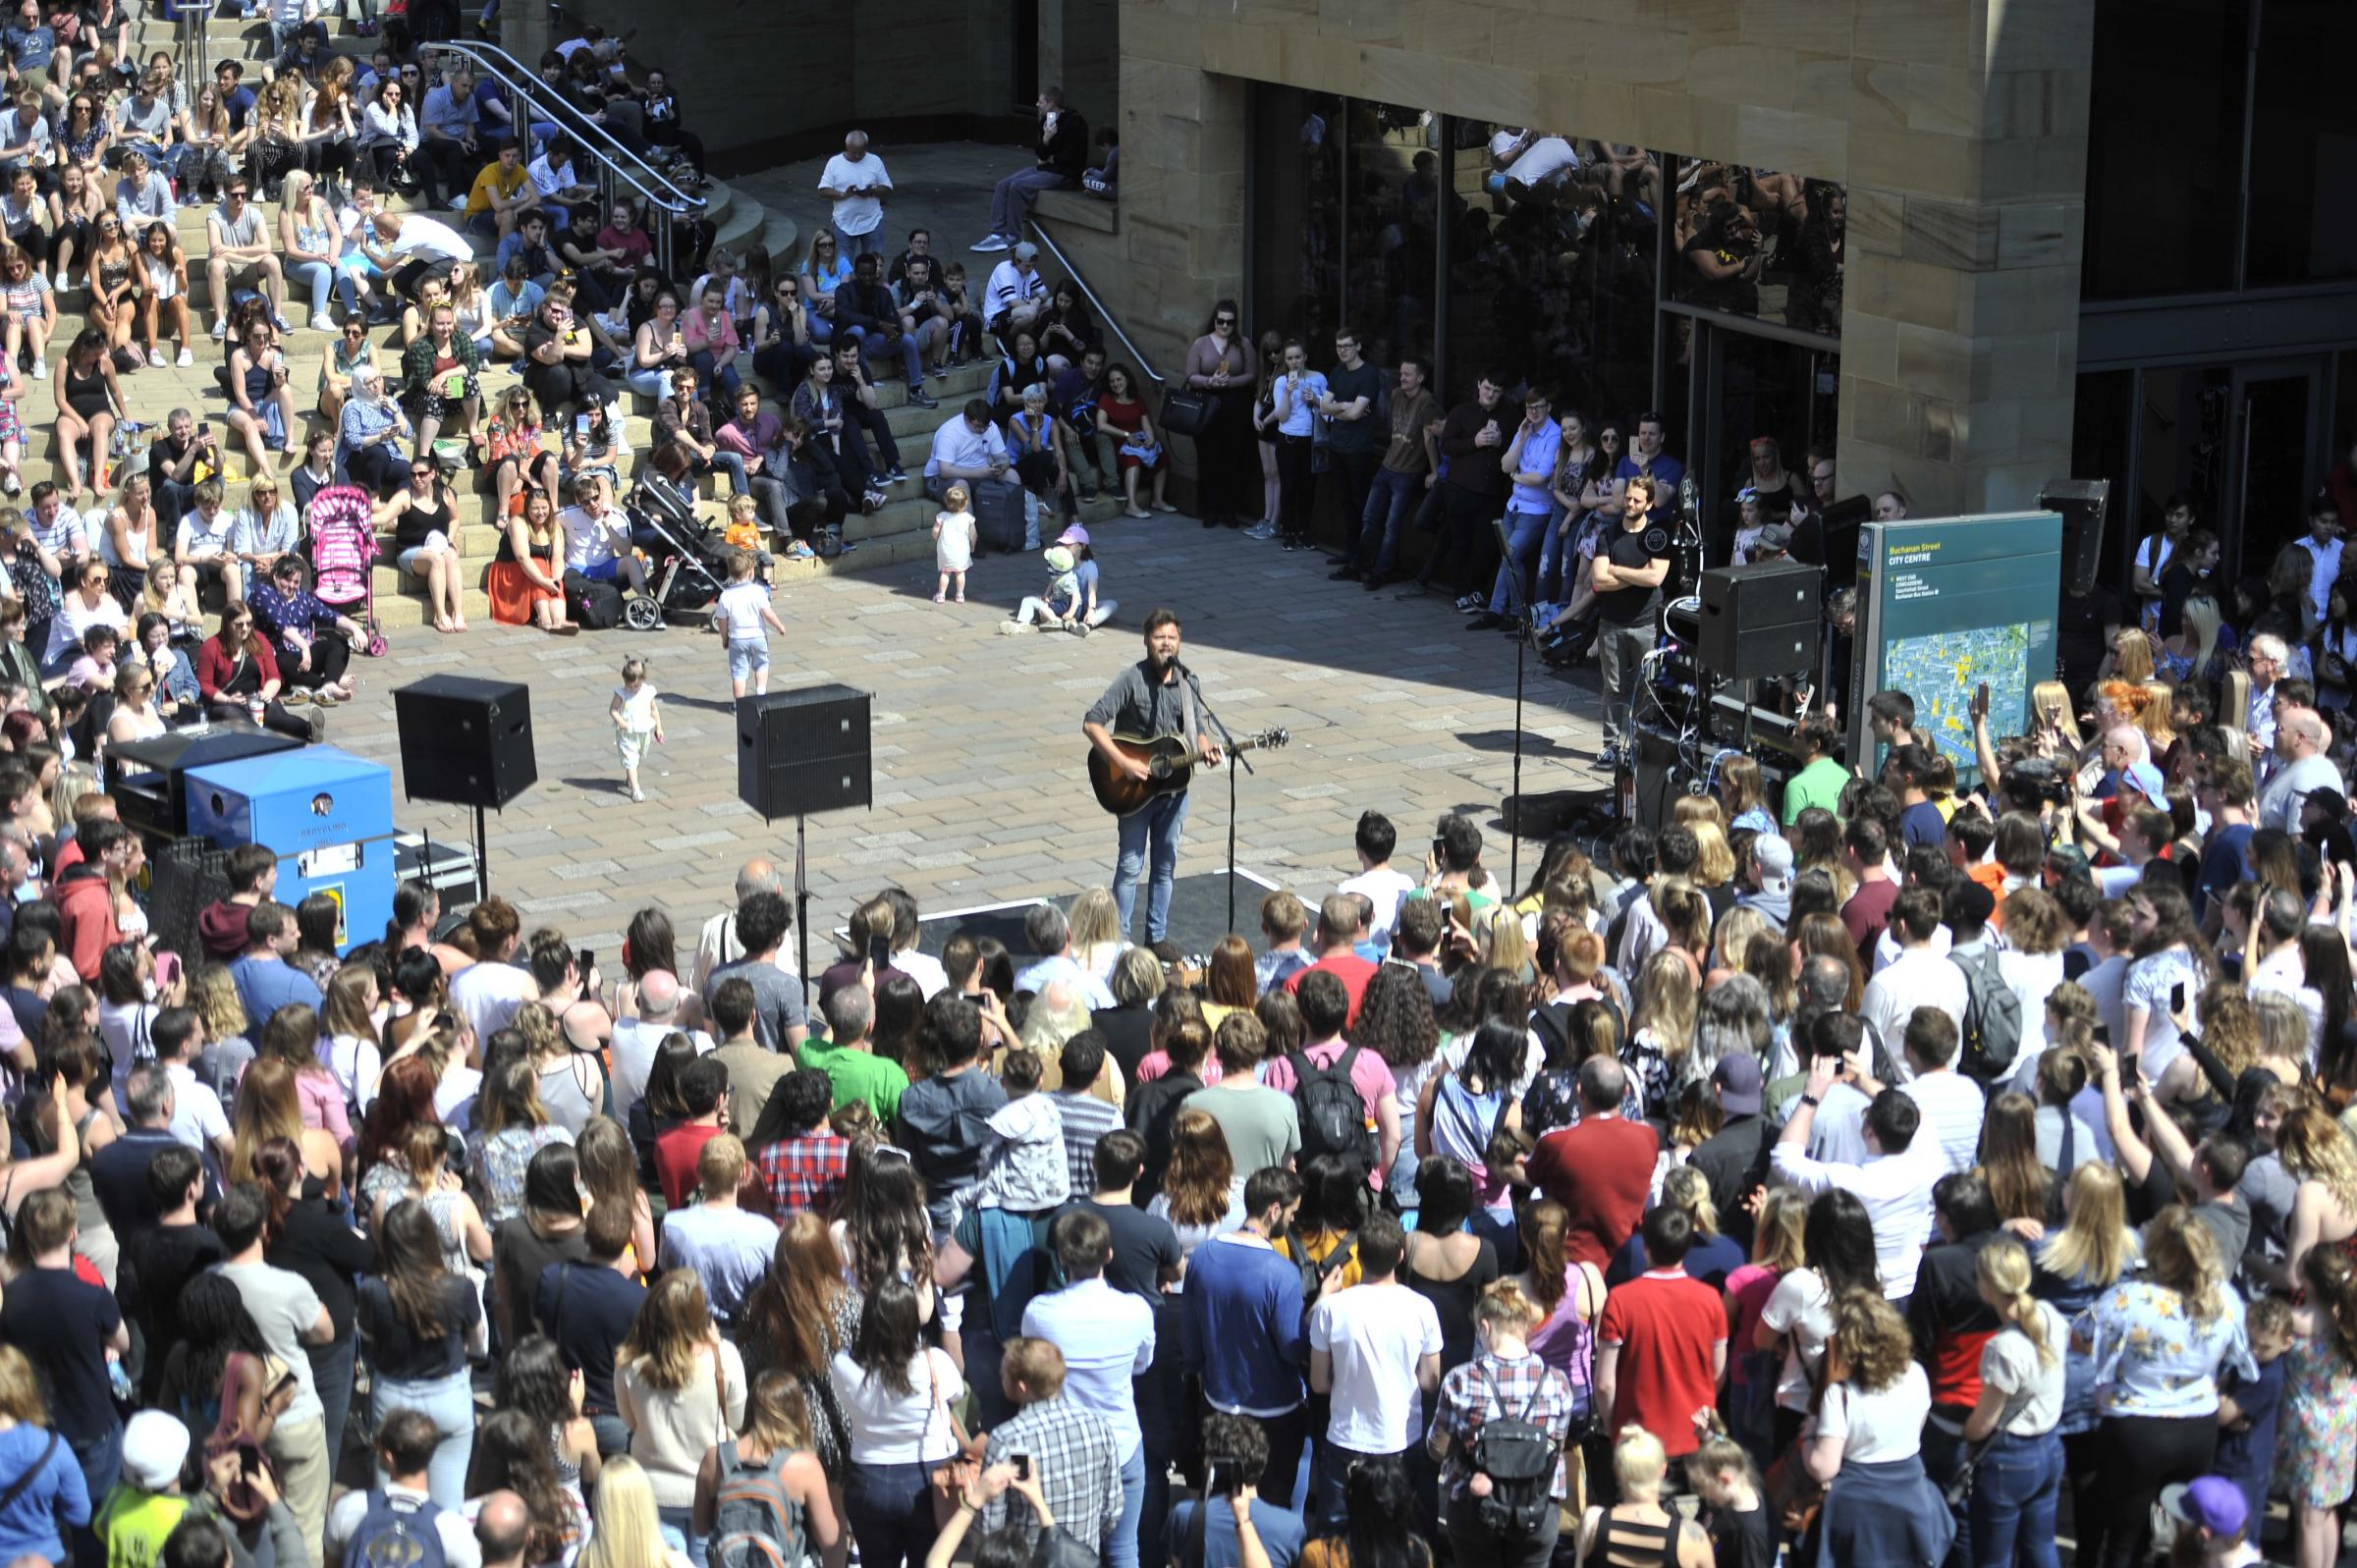 GLASGOW, SCOTLAND - MAY 25: crowds watch Mike Rosenberg from band Passenger performs to the public on Buchanan street May 25, 2018 in Glasgow, Scotland. (Photo by Jamie Simpson/Herald & Times) - JS.